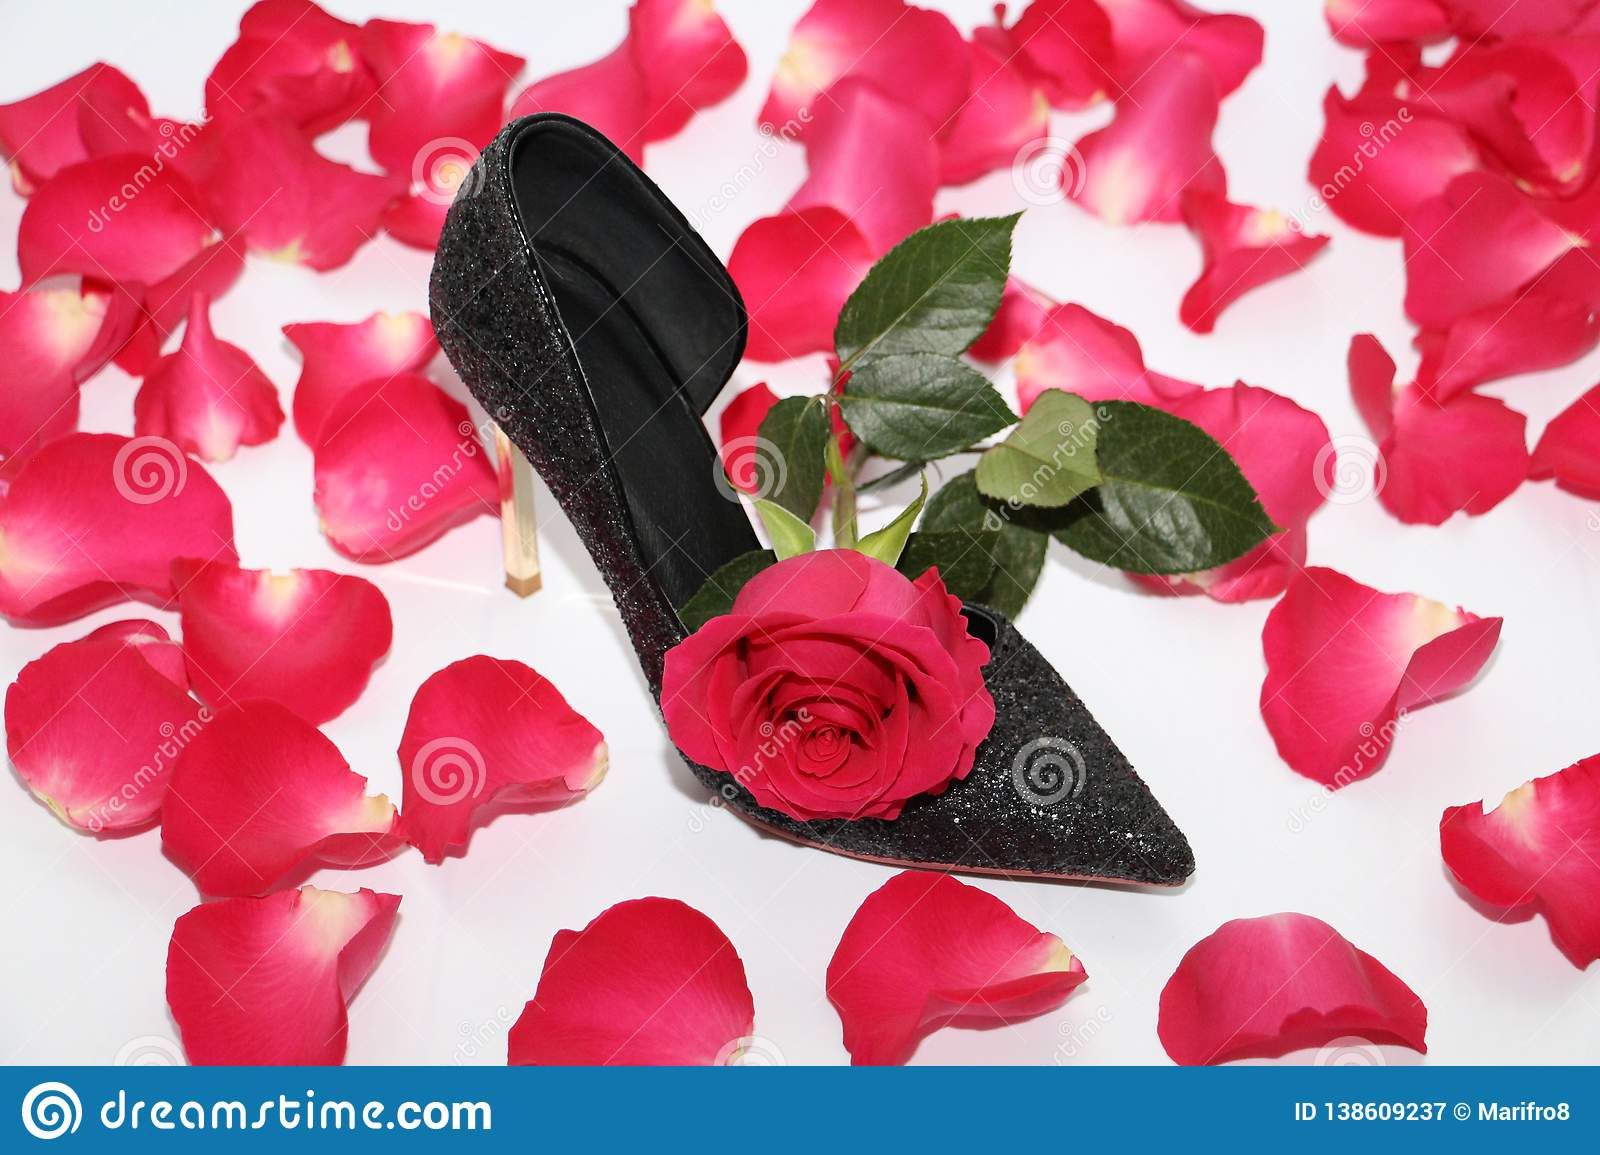 2fb7ae0884f Pink rose in a female shoe. Black shoes with high heels. Rose next to a black  shoe